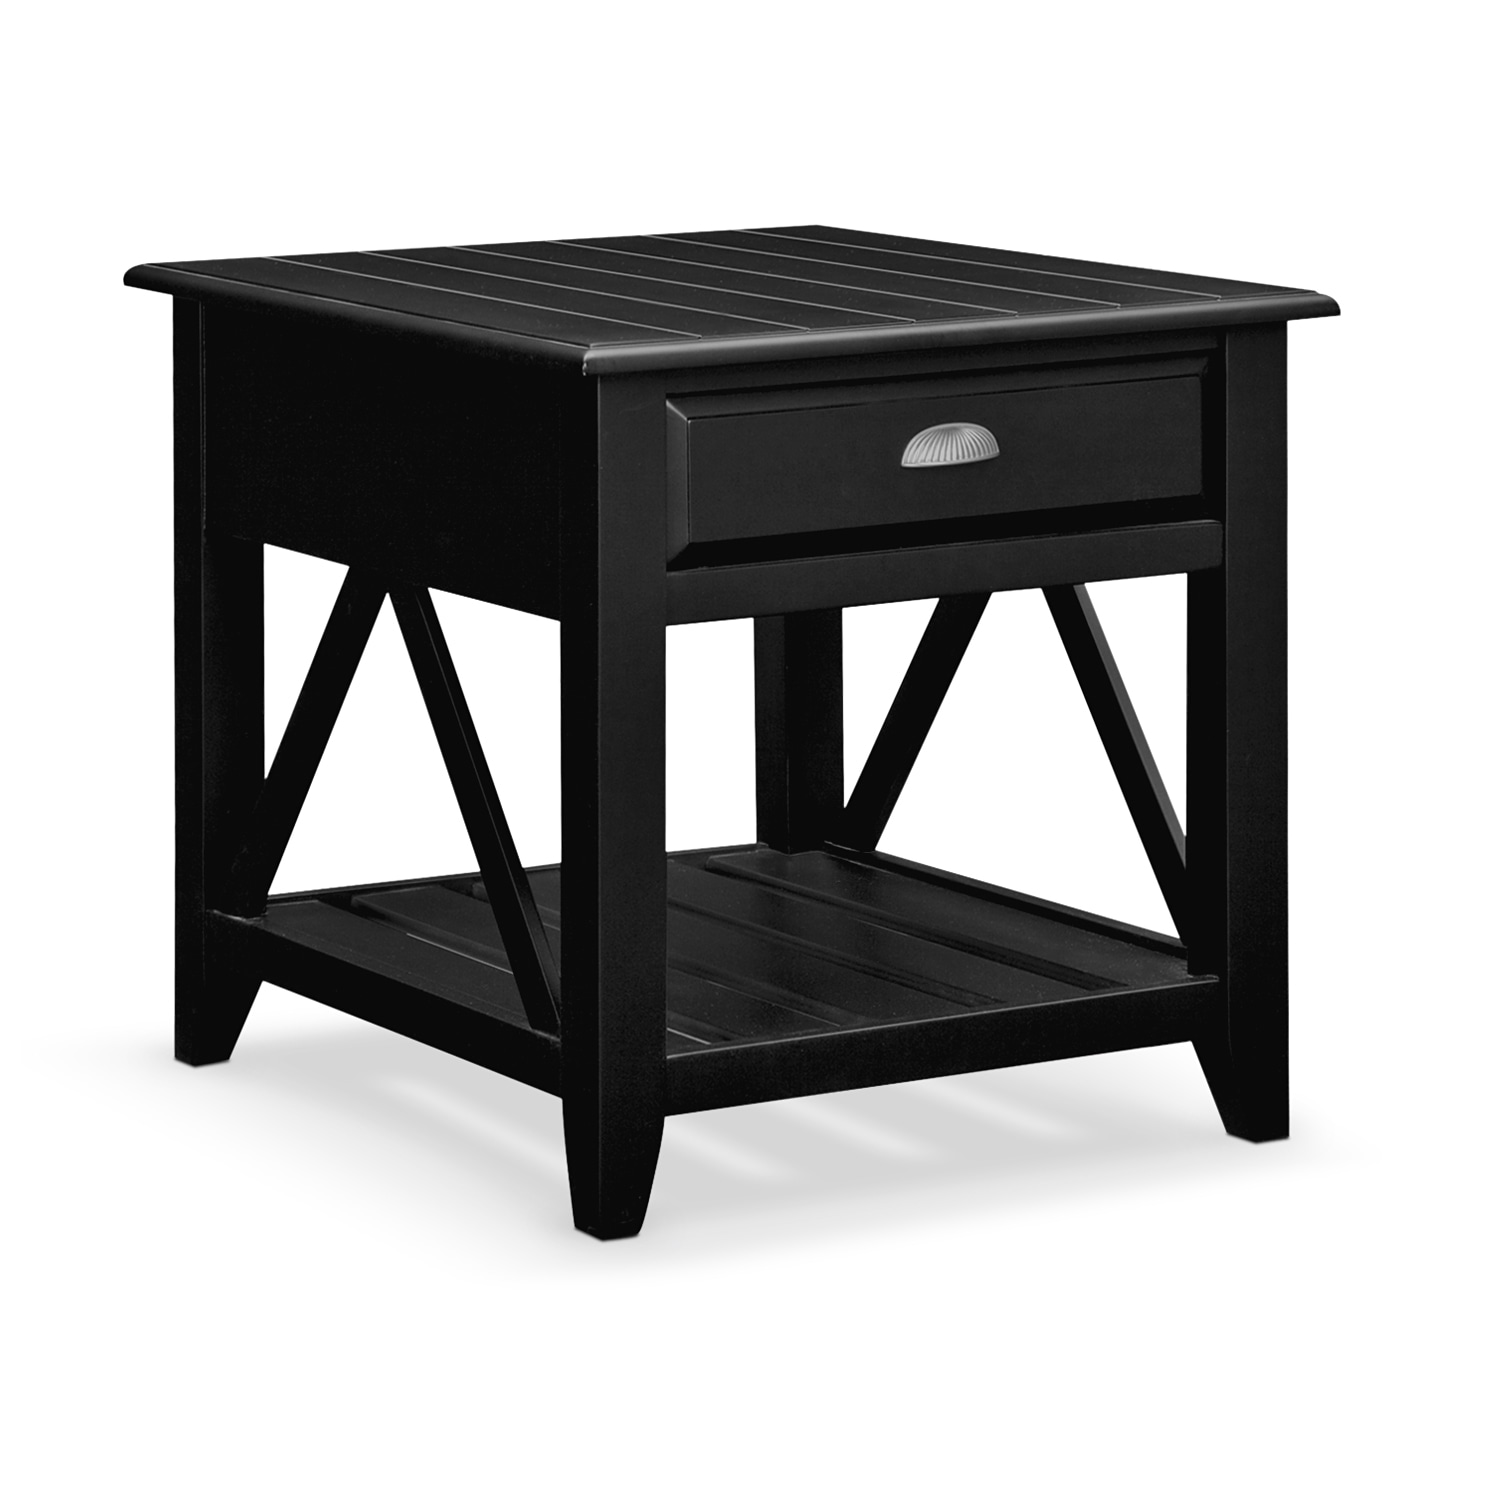 plantation cove coastal end table black value city furniture and small rectangular accent click change glass sofa side mid century modern wooden trestle bunnings with charging